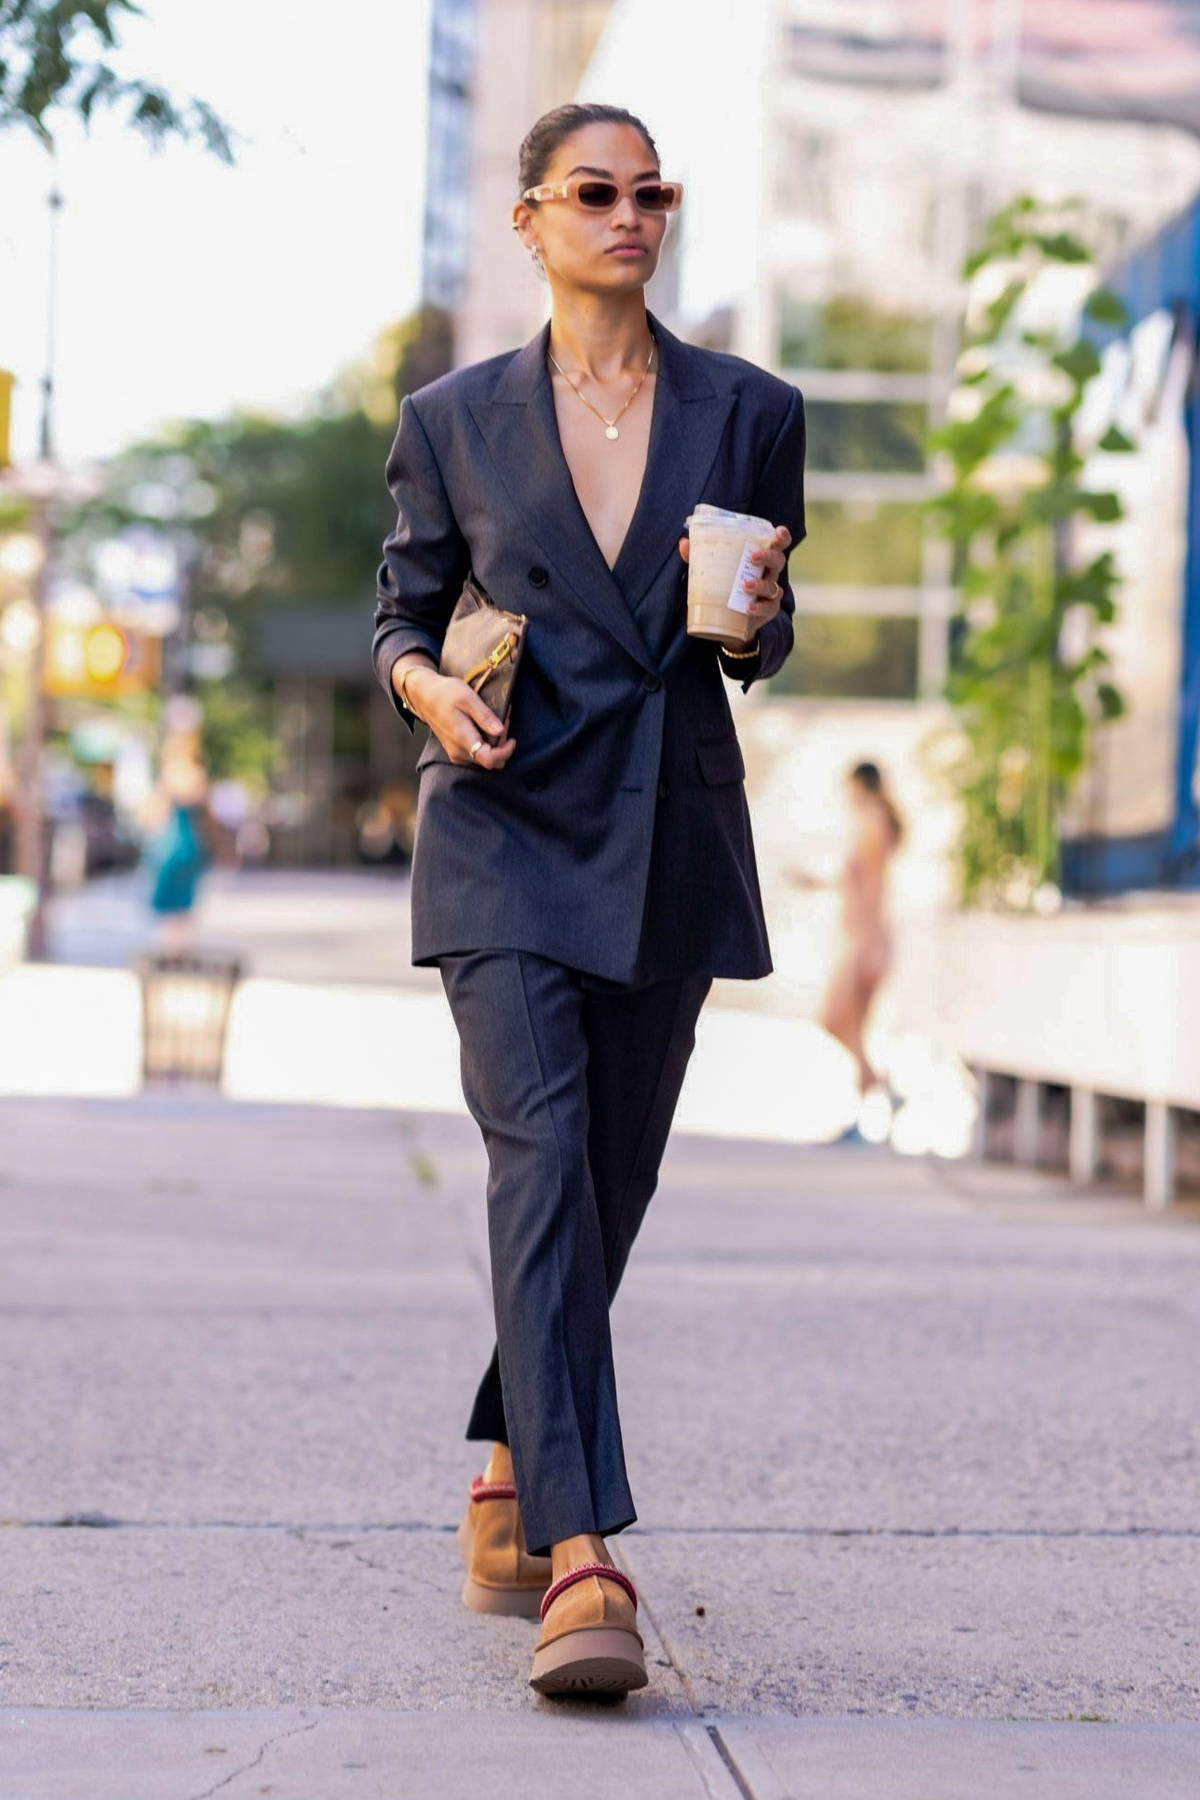 Shanina Shaik looks fashionable in a black suit while stepping out for coffee in SoHo, New York City